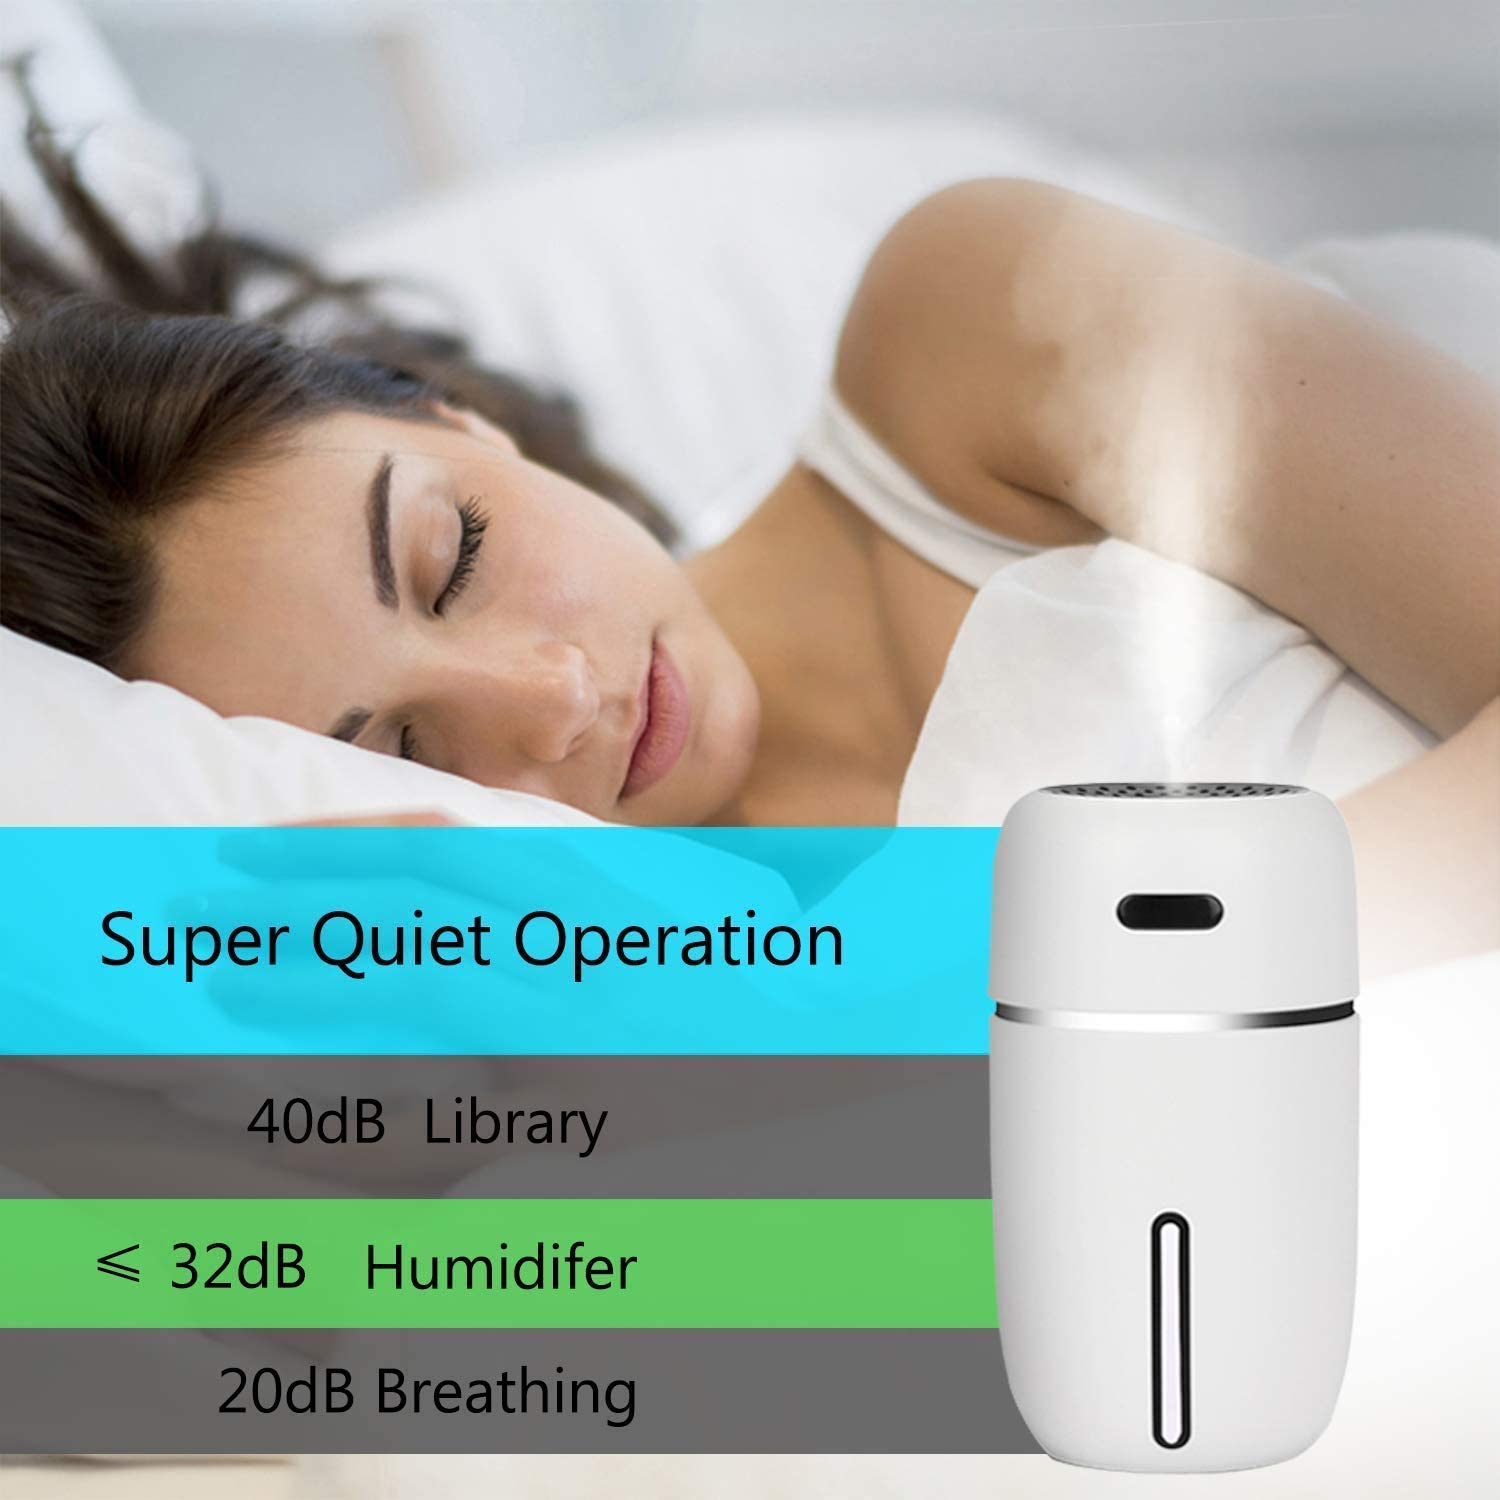 Super Quiet Small Portable Humidifier for Desk Travel Office Car Bedroom Auto Shut-Off Two Mist Modes NovoLido Mini USB Humidifier with 7-Colors Mode Light Ultrasonic Fine Fog 200ml White